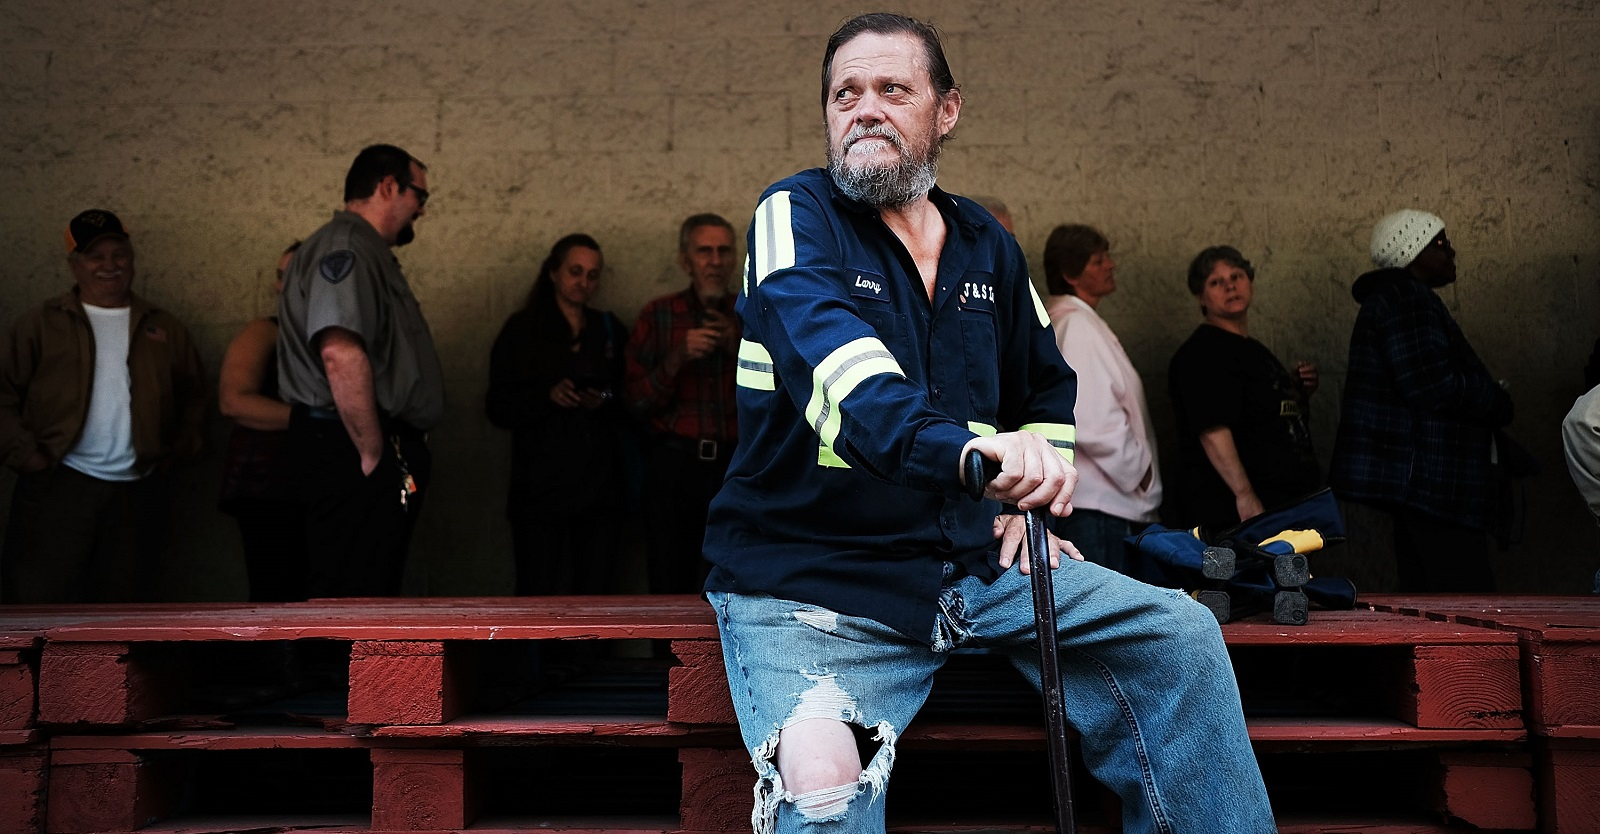 Local man Bobby McPeak among those waiting outside a foodbank in the struggling coal mining town of Welch, West Virginia (Photo: Spencer Platt/Getty Images)